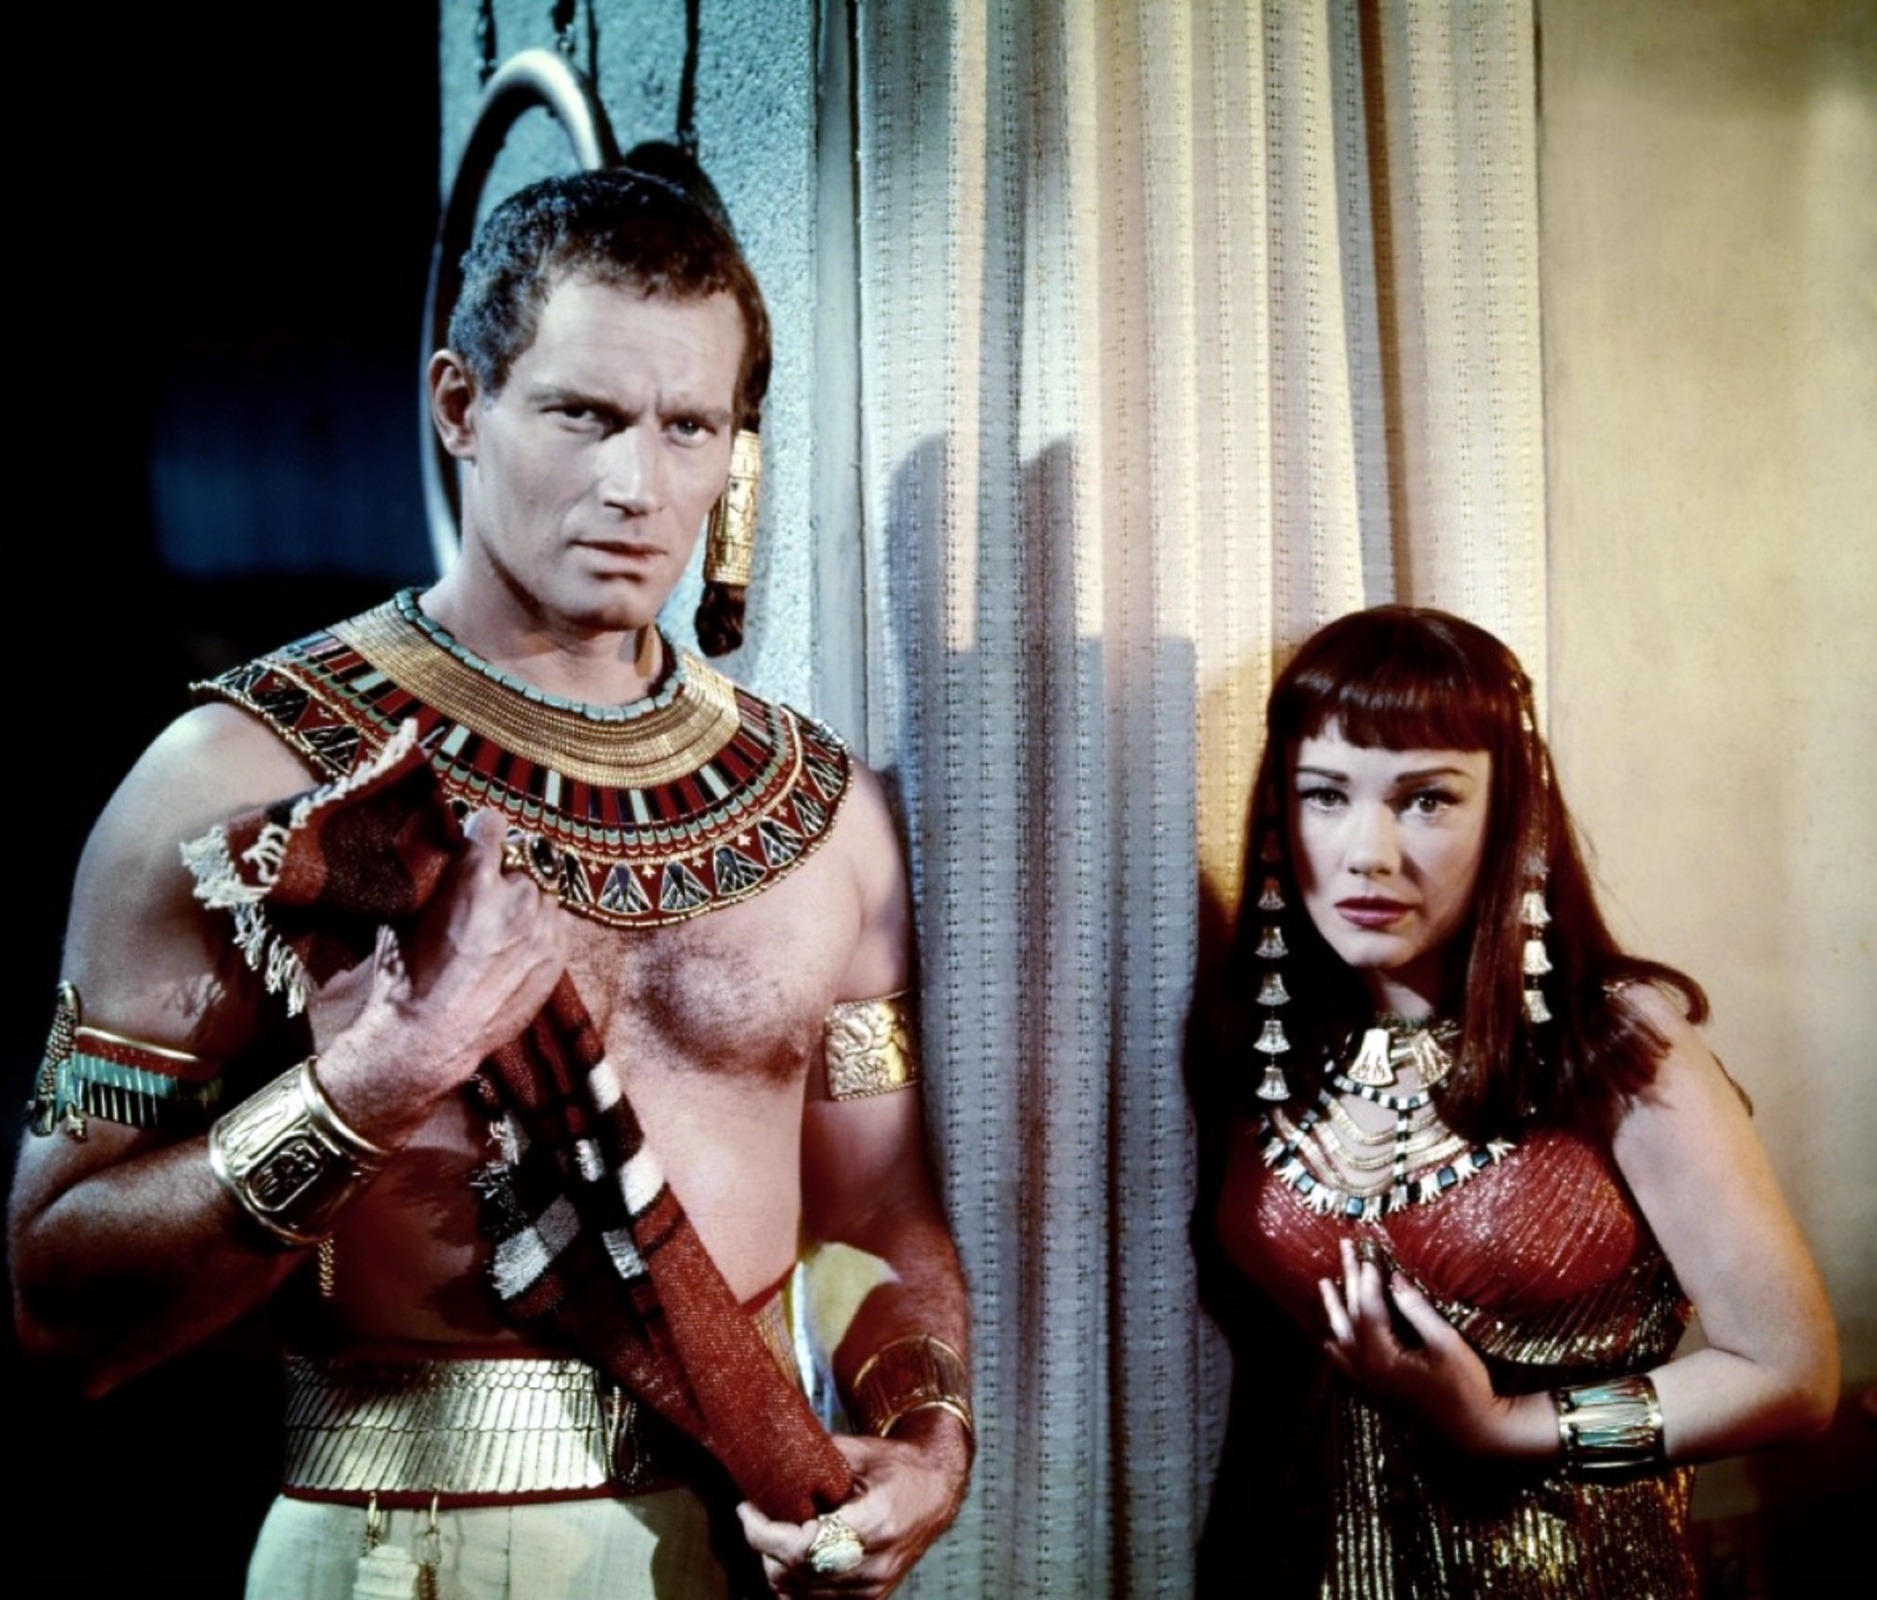 Charlton Heston in The Ten Commandments with With Anne Baxter